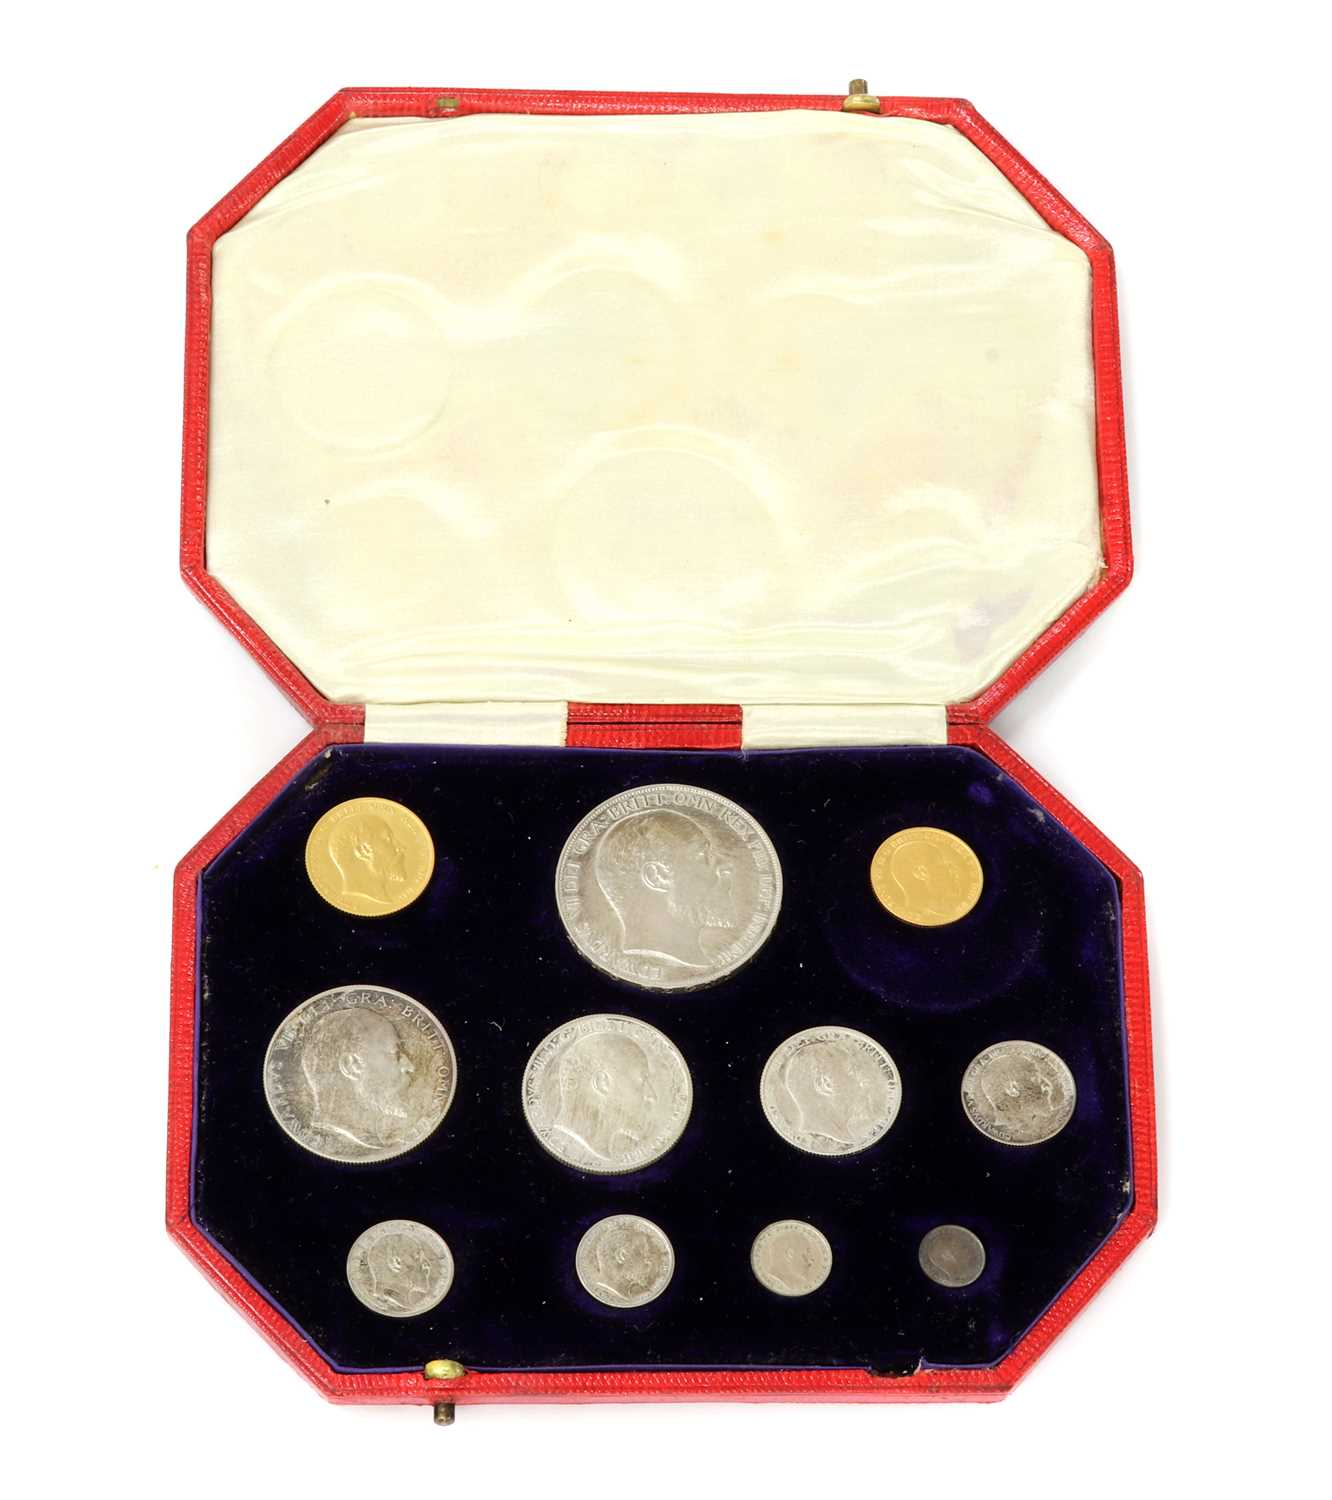 Coins, Great Britain, Edward VII (1901-1910), - Image 2 of 3